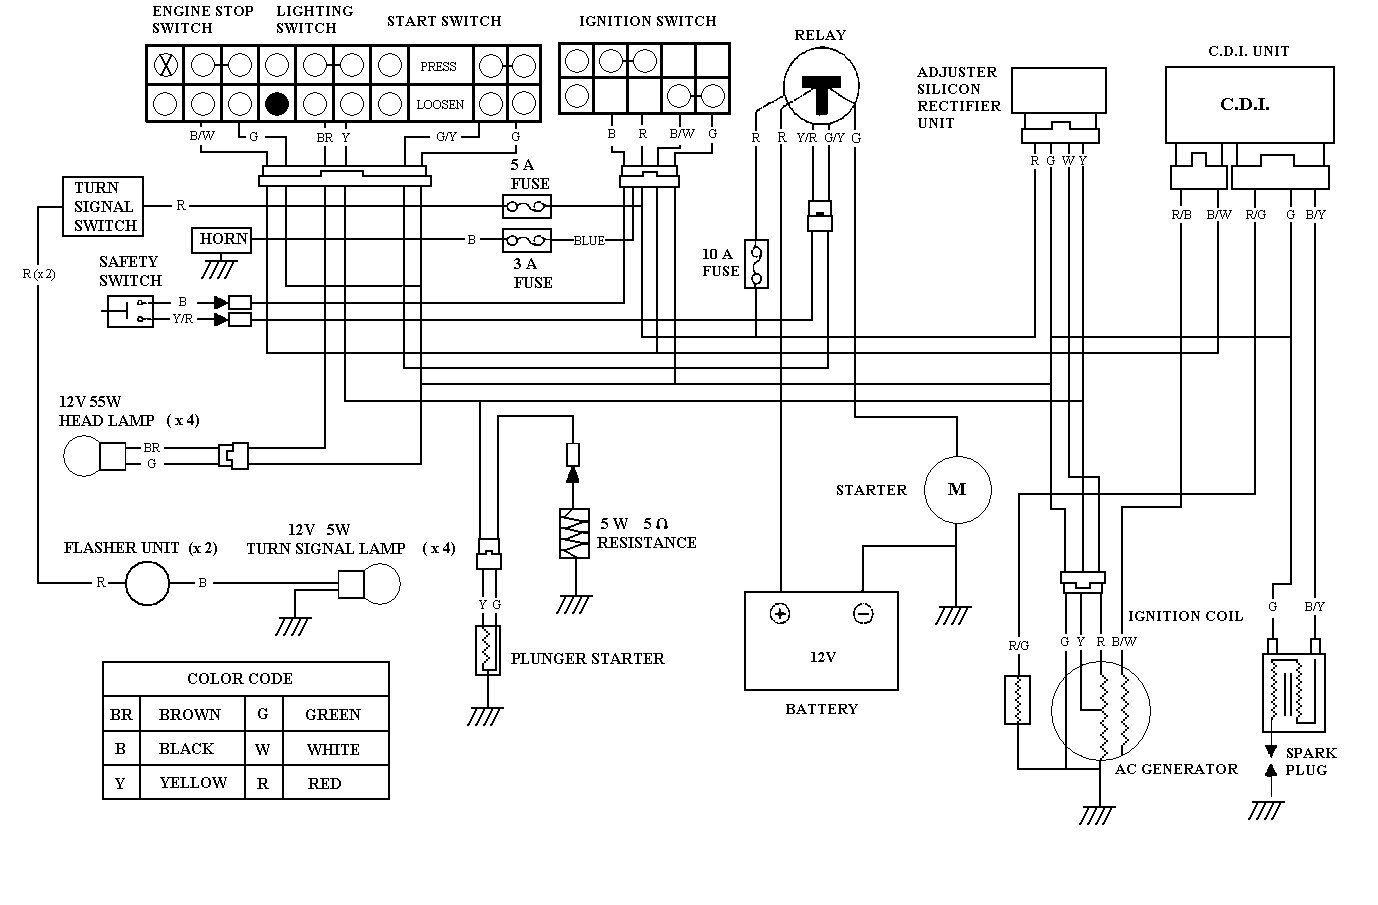 Switch Wiring Diagram As Well Ktm Ignition System Wiring Diagrams